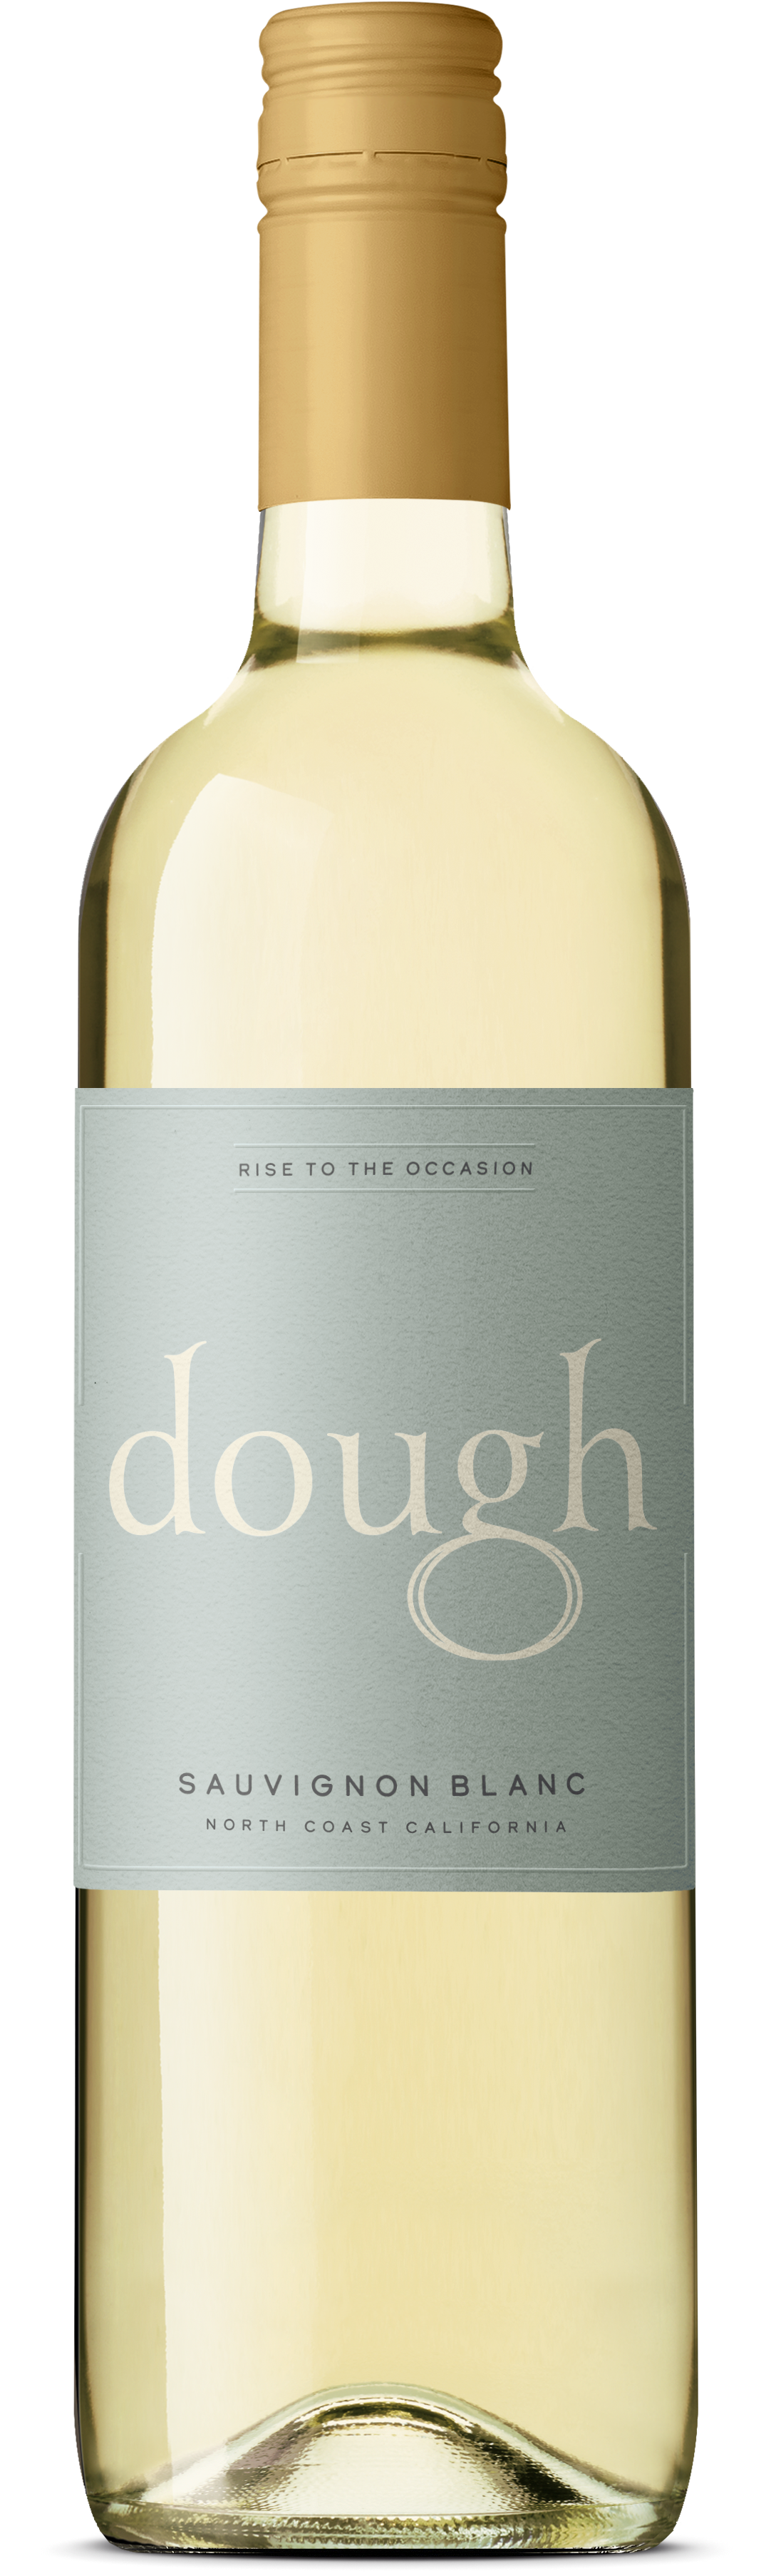 Dough Wines 2019 North Coast Sauvignon Blanc